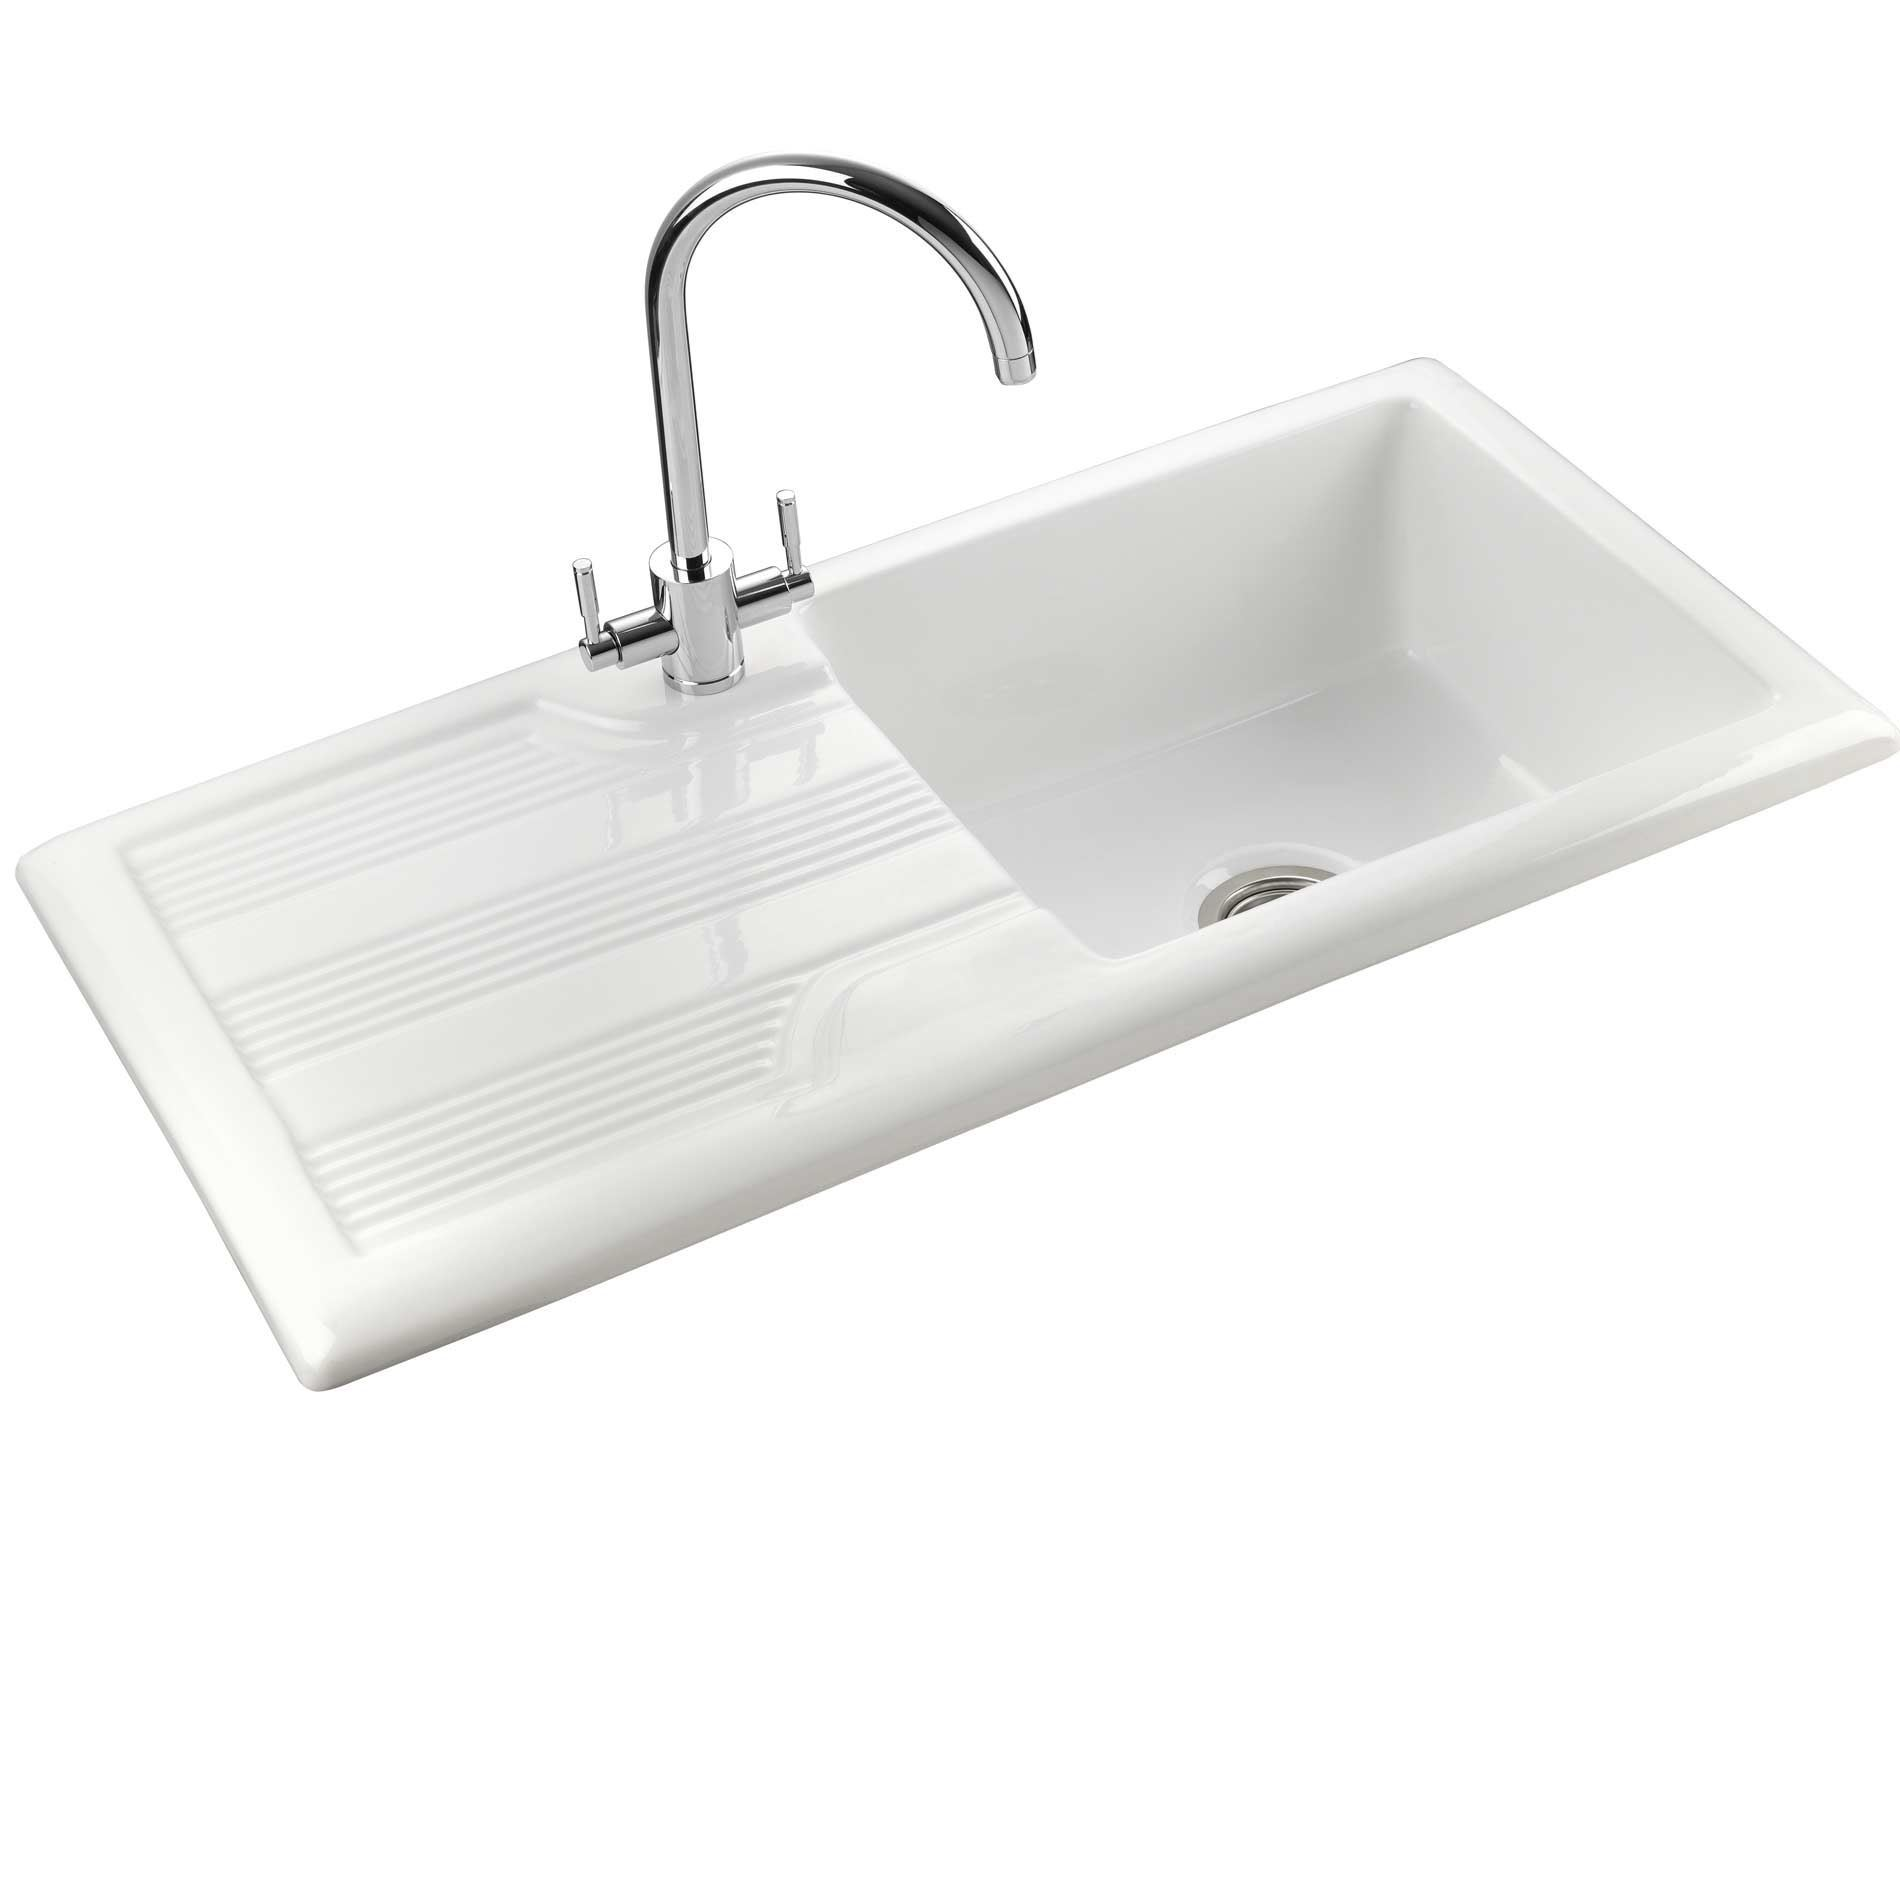 Rangemaster Kitchen Sinks Rangemaster portland cpl10101wh ceramic sink kitchen sinks taps picture of portland cpl10101wh ceramic sink workwithnaturefo